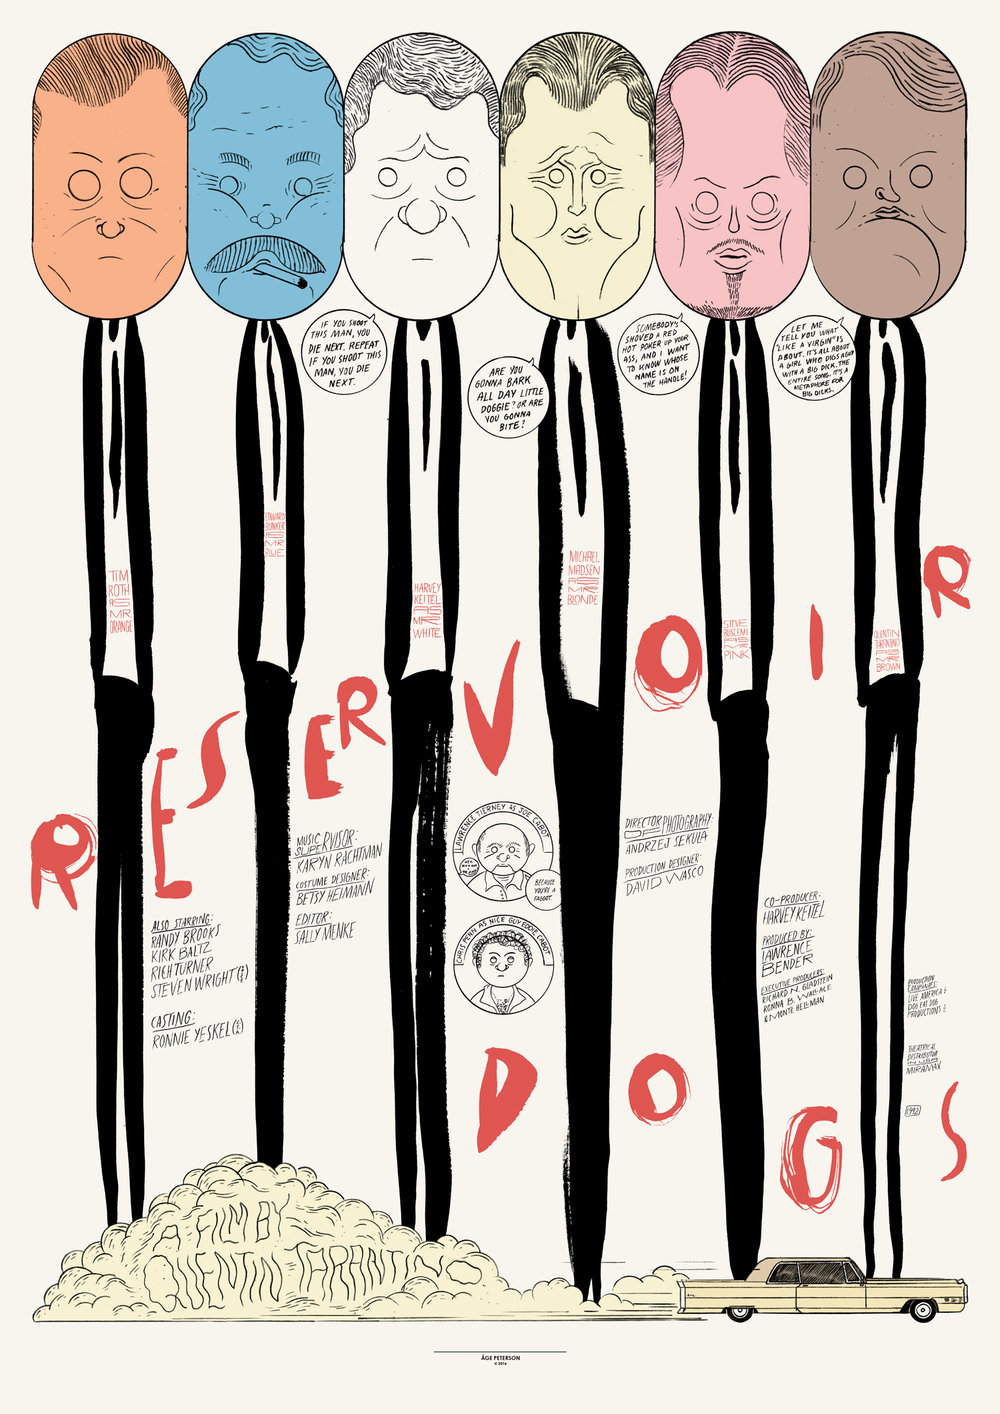 Reservoir-Dogs+©+Aage+Peterson+2016.jpg